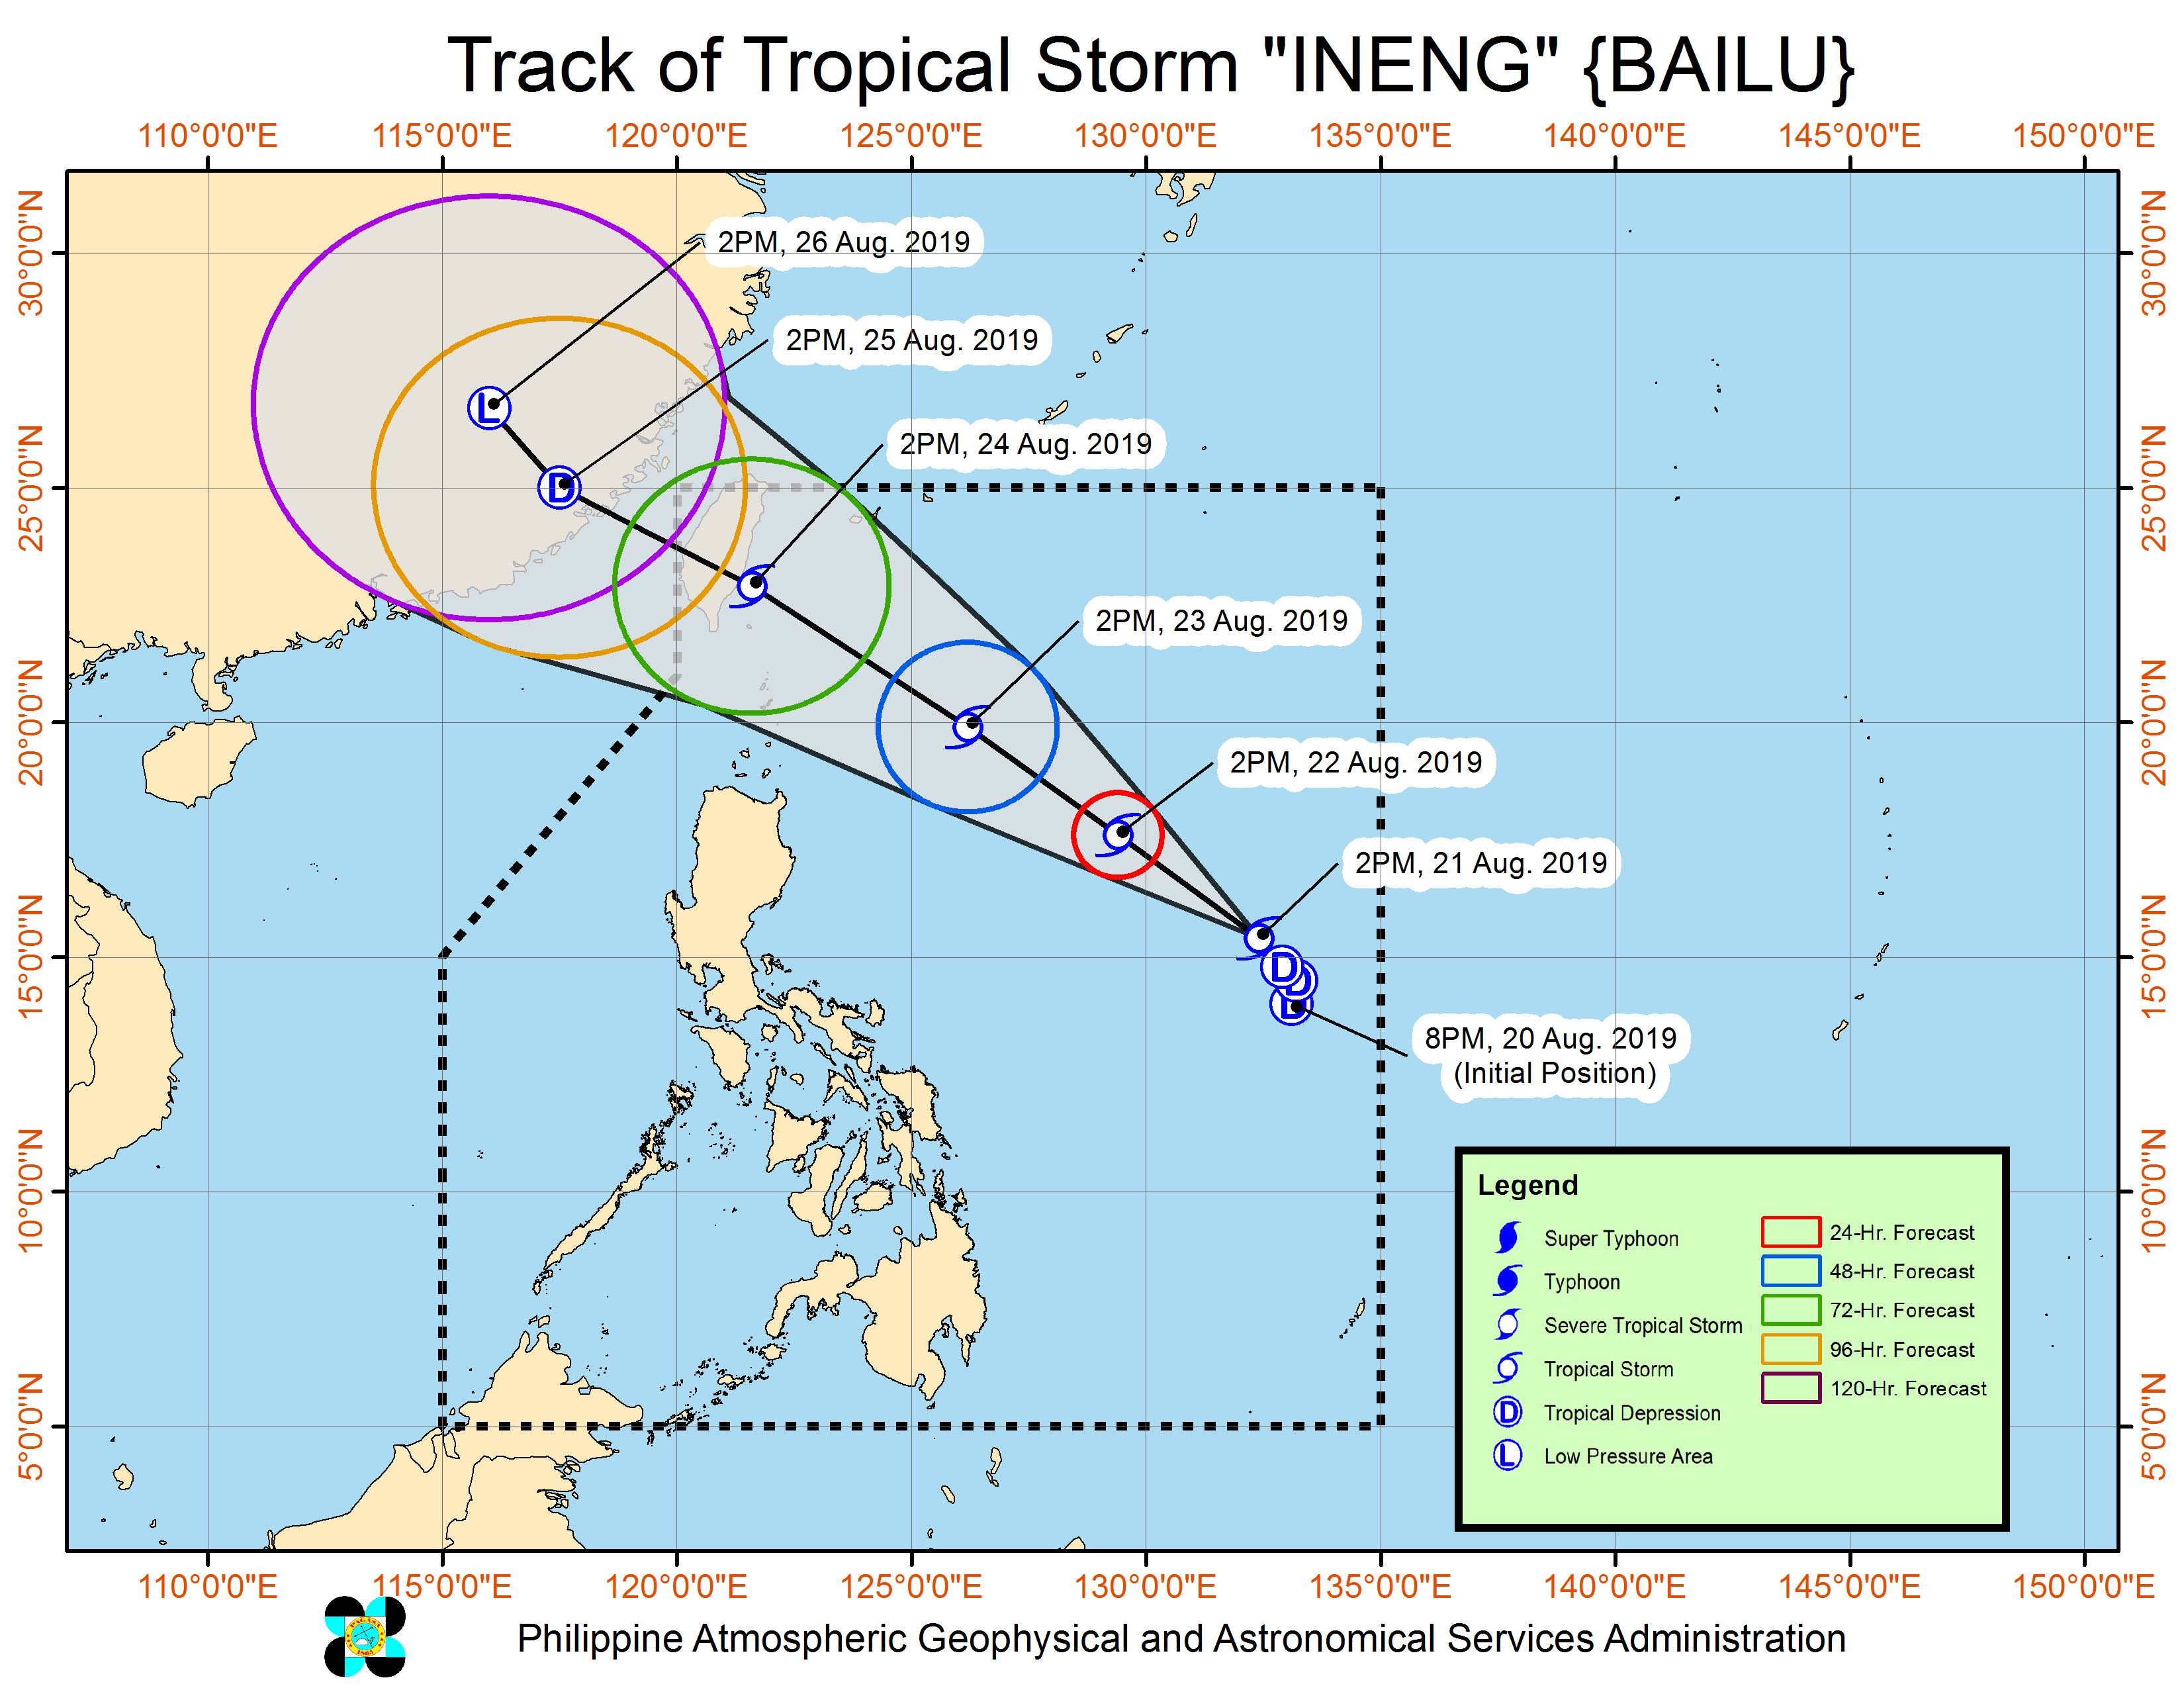 Forecast track of Tropical Storm Ineng (Bailu) as of August 21, 2019, 5 pm. Image from PAGASA